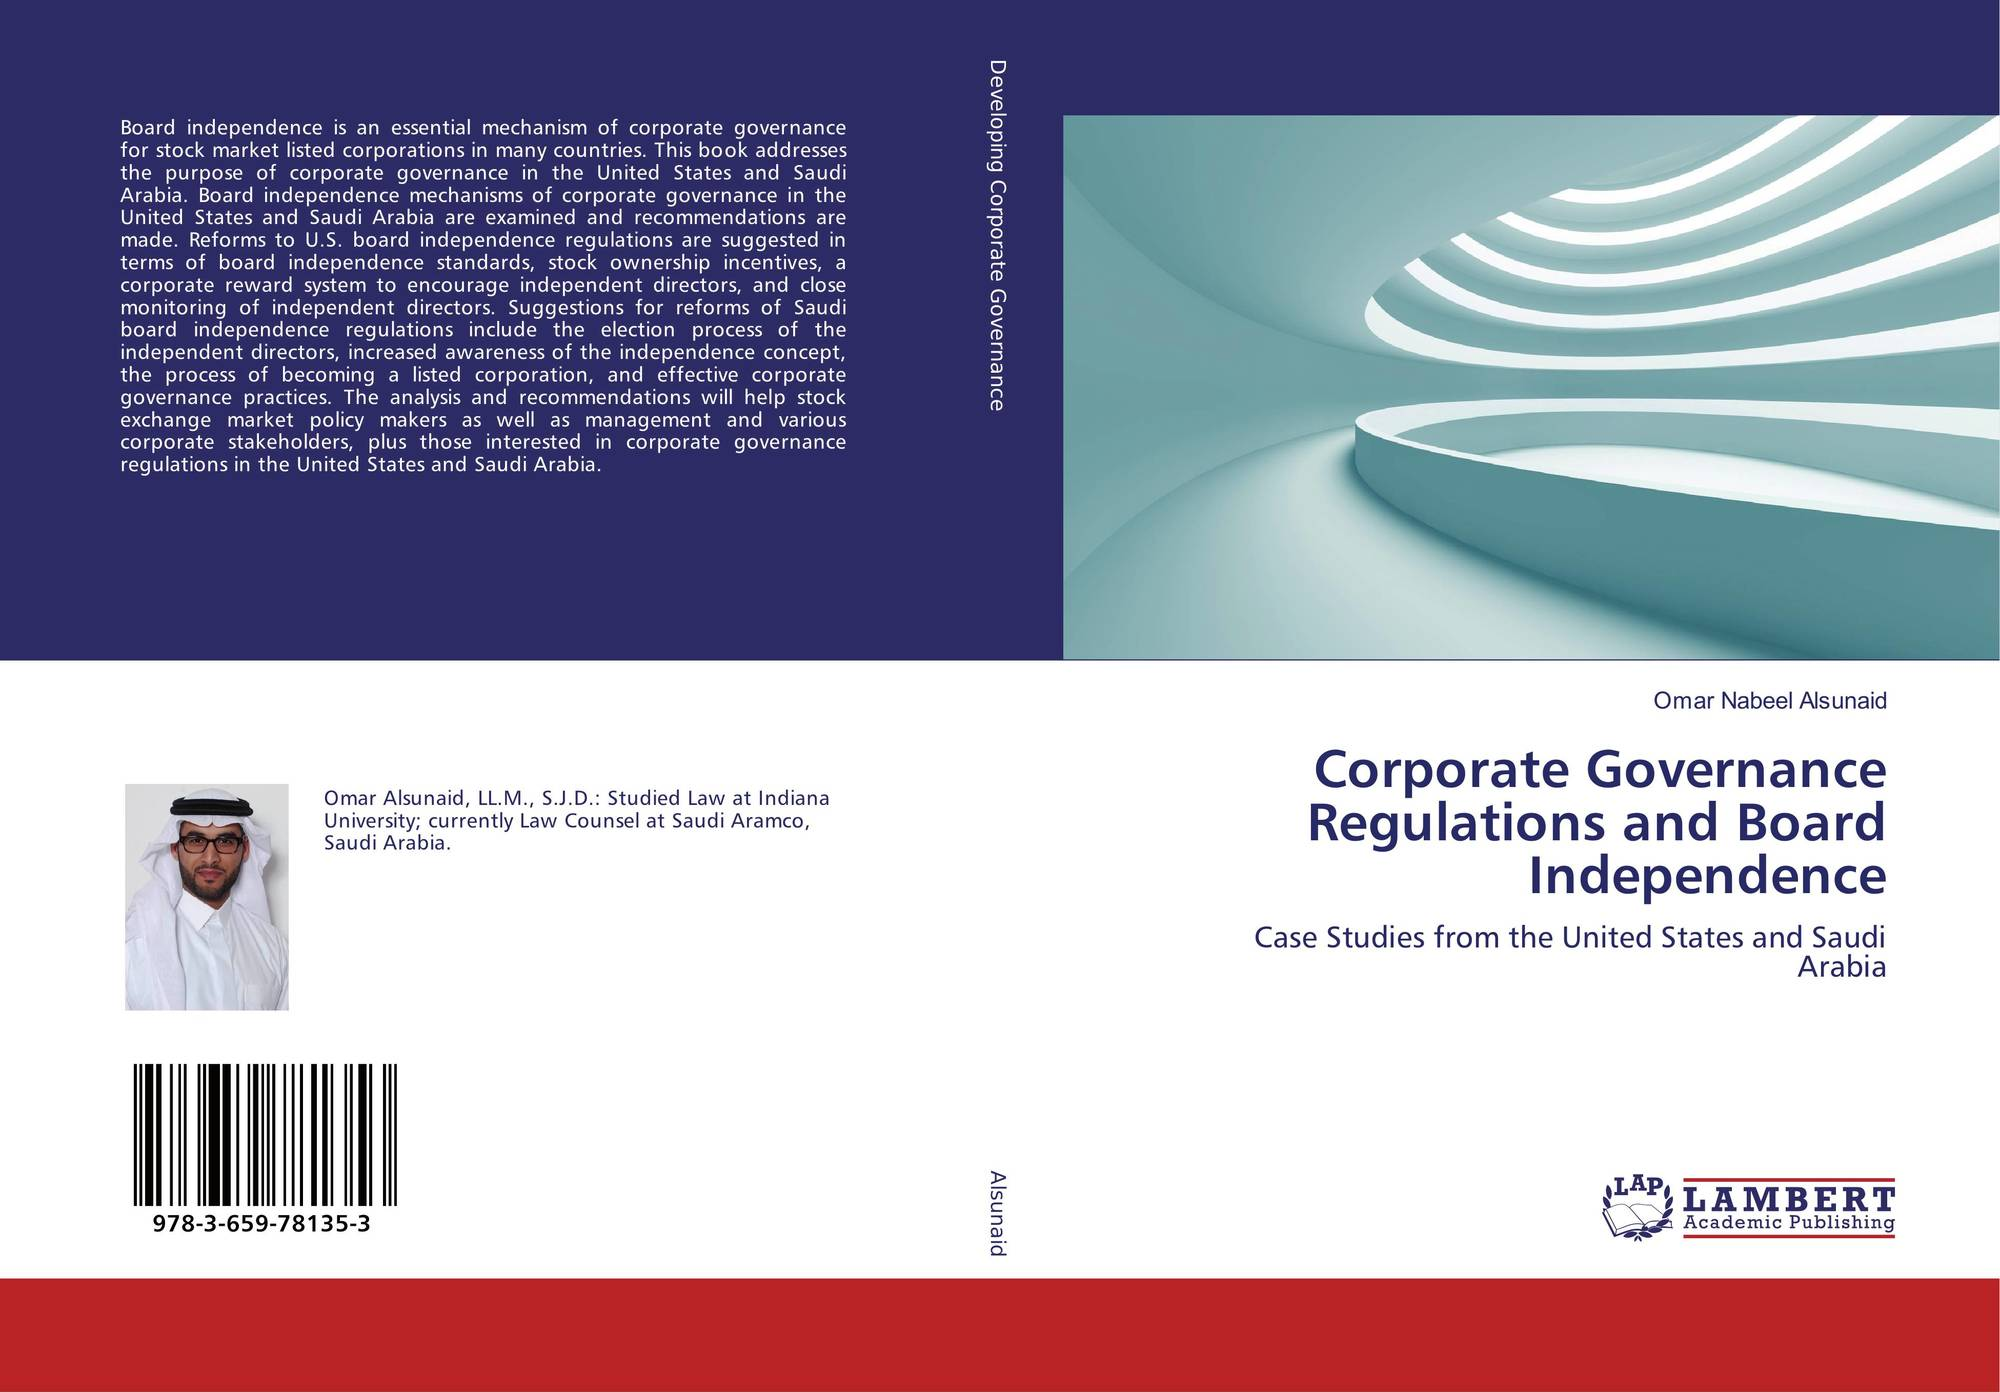 corporate governance regulation Regulation i-2015-01 corporate governance annual disclosure section 1 authority this regulation is promulgated pursuant to the authority granted by 8 vsa.